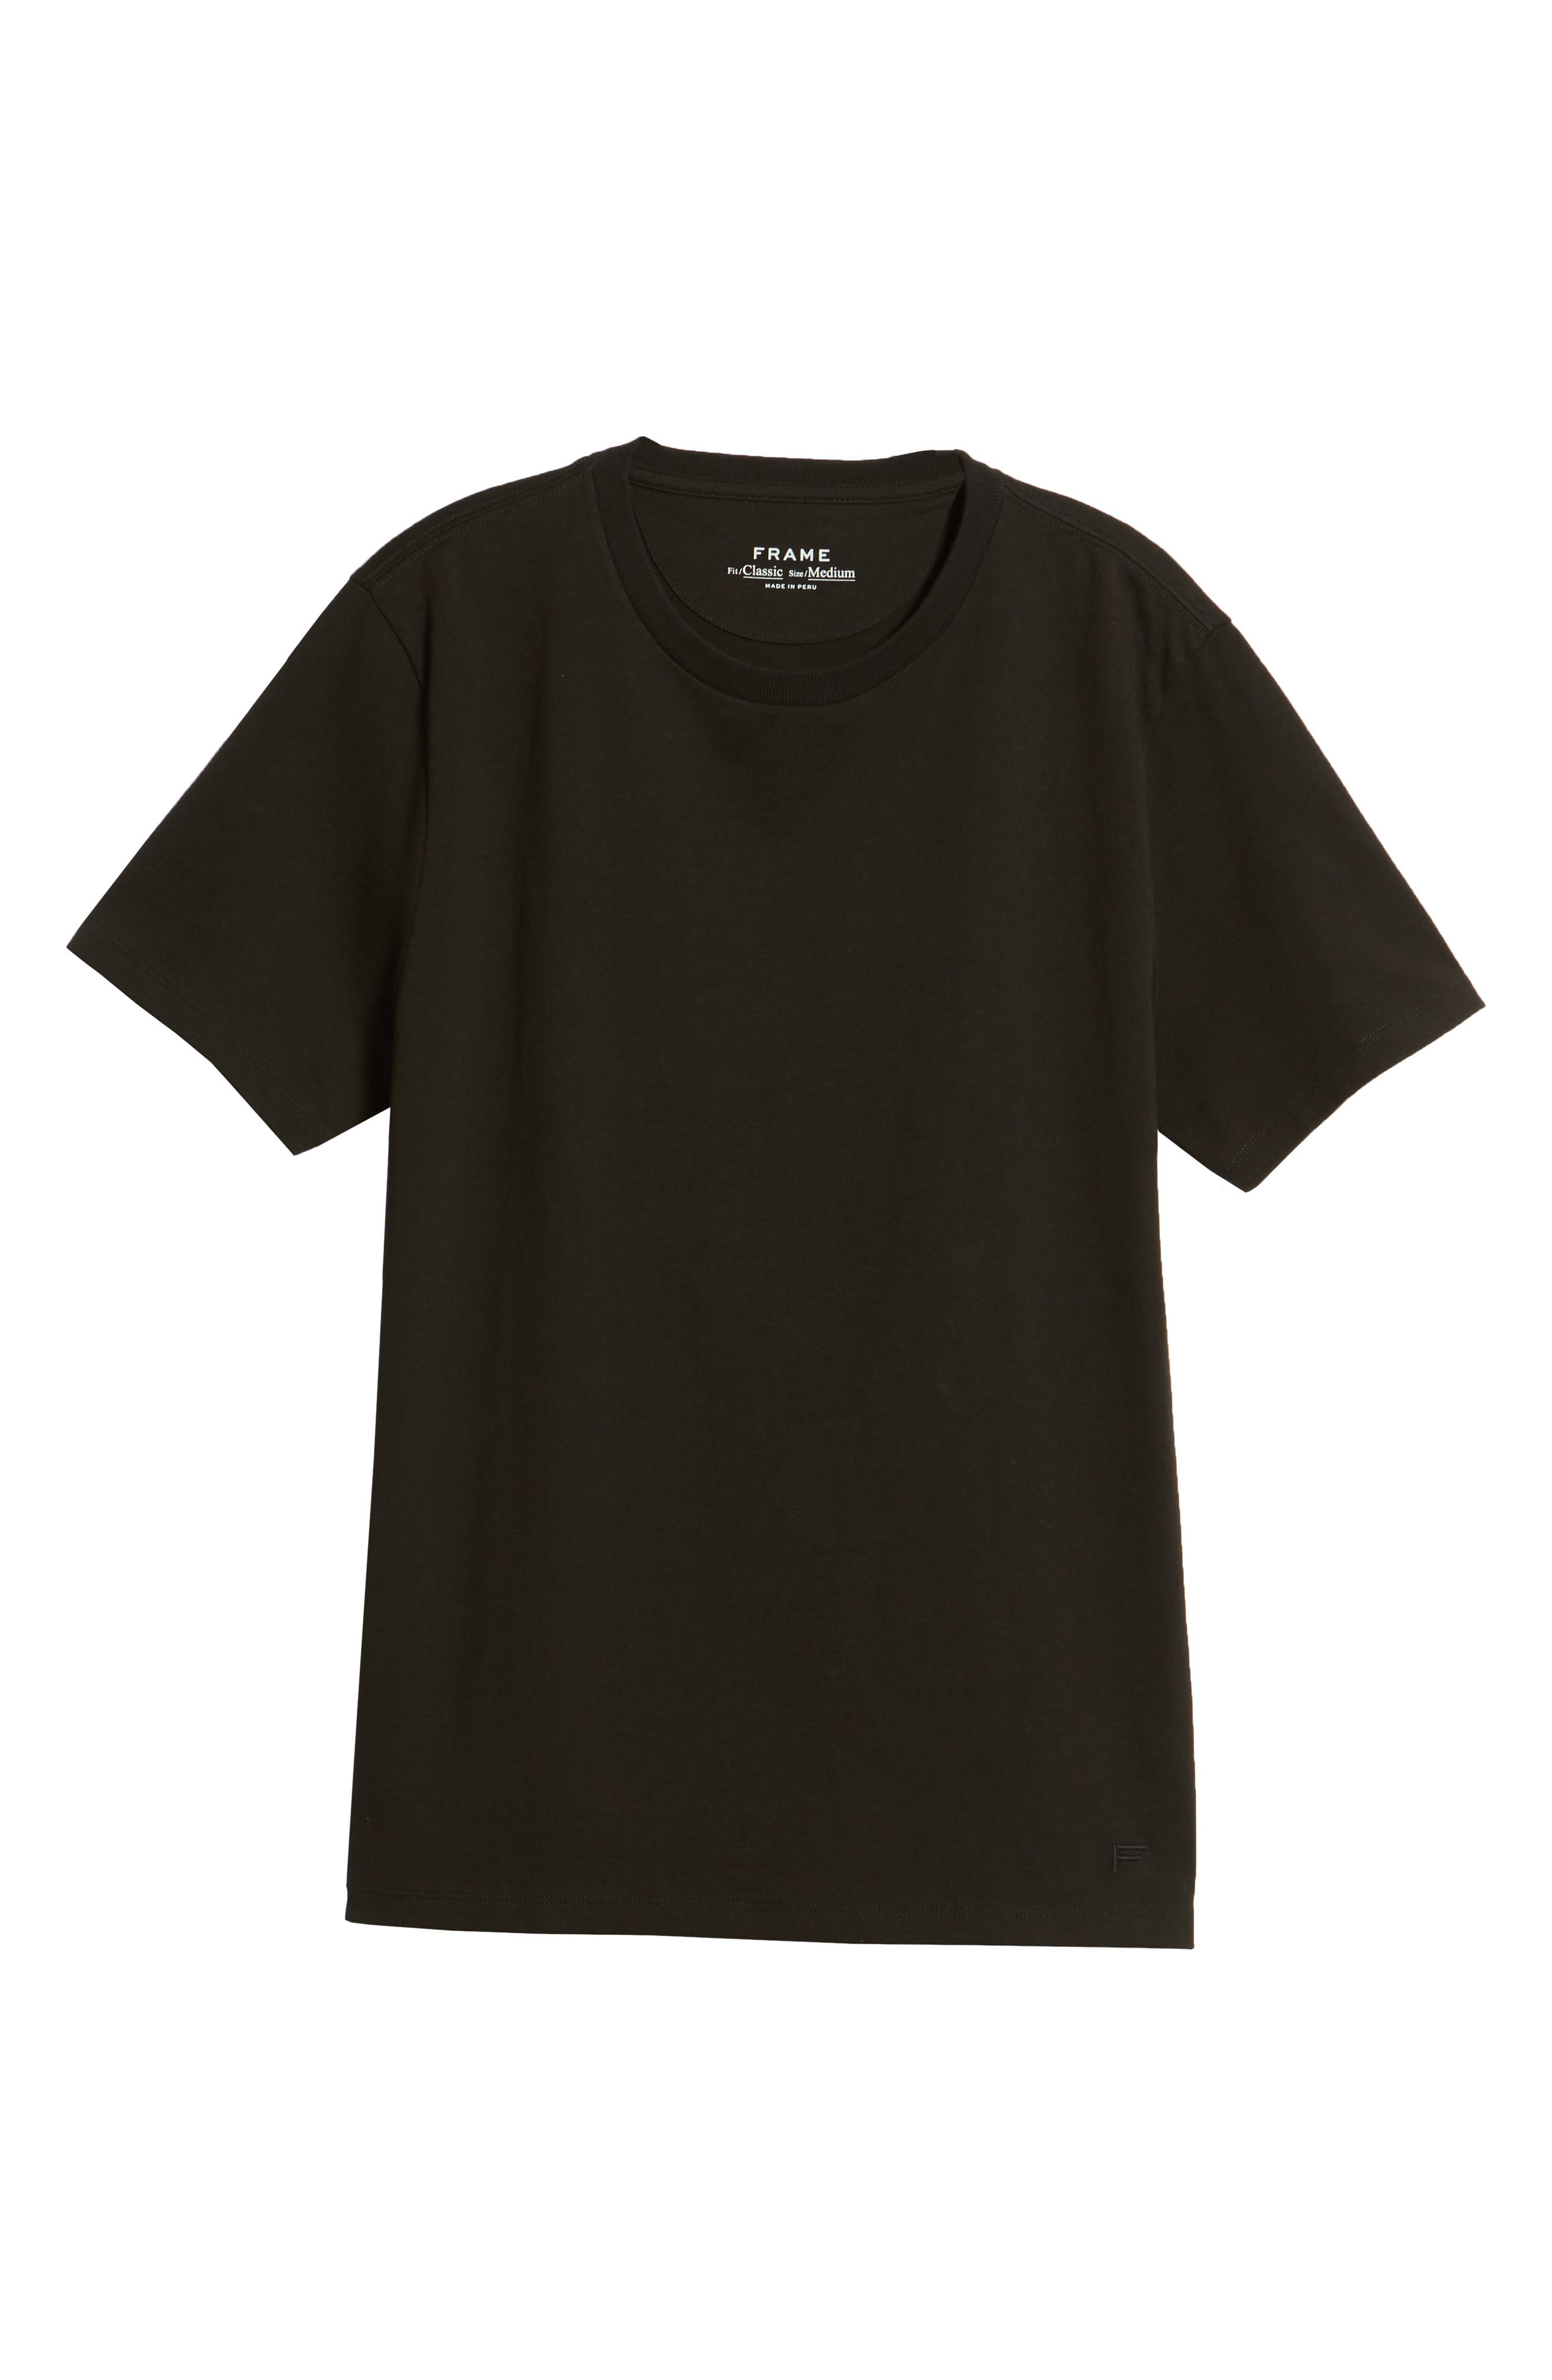 Classic Fit Cotton T-Shirt,                             Alternate thumbnail 6, color,                             NOIR